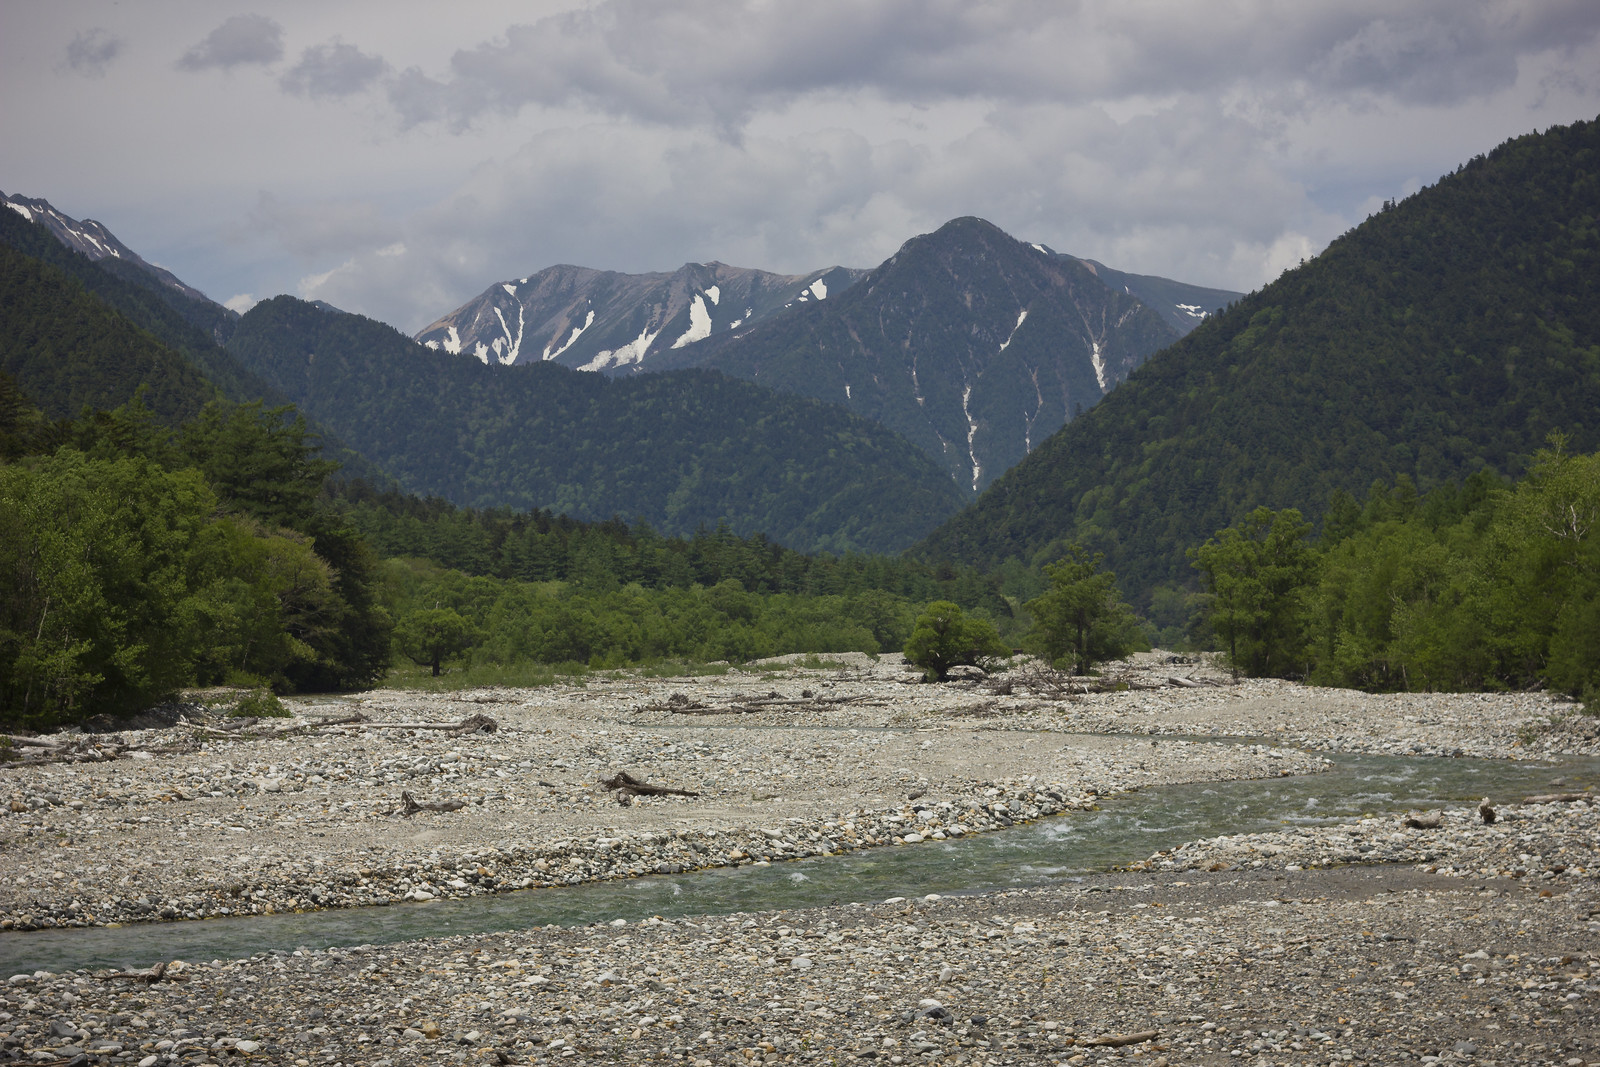 Takayama and the Japan Alps